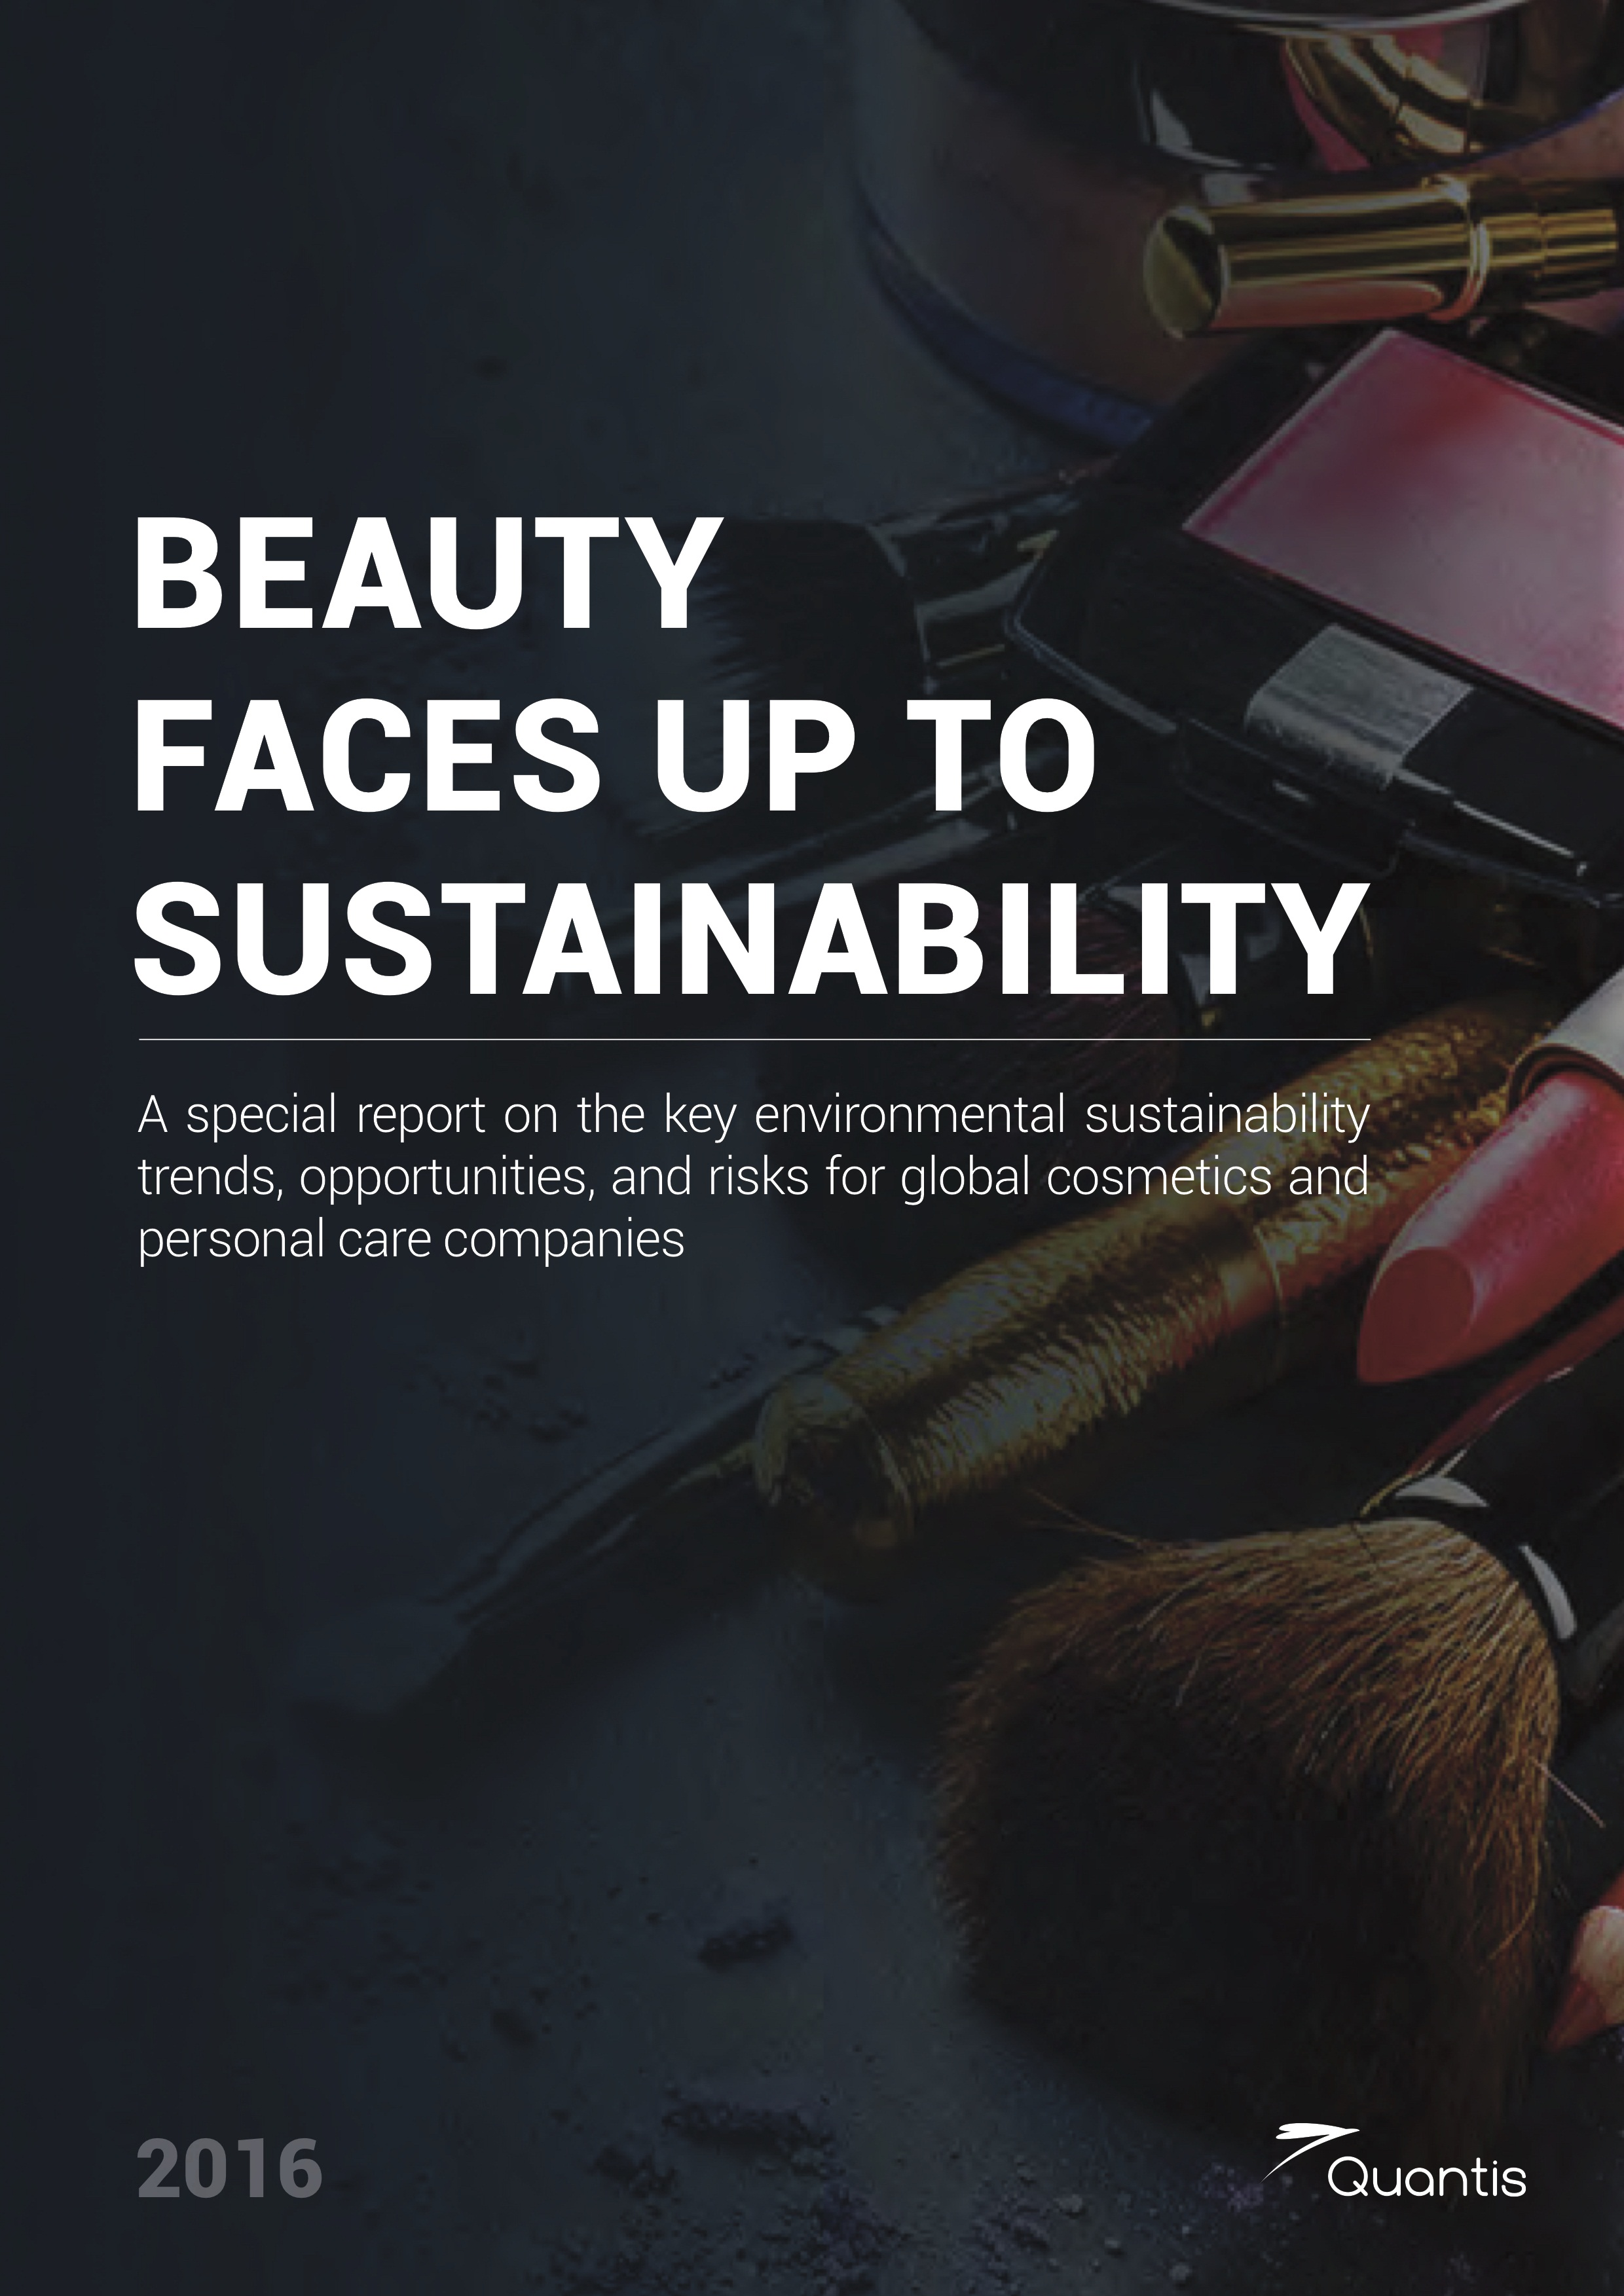 quantis Report released on top sustainability issues and challenges in the cosmetics and personal care industry